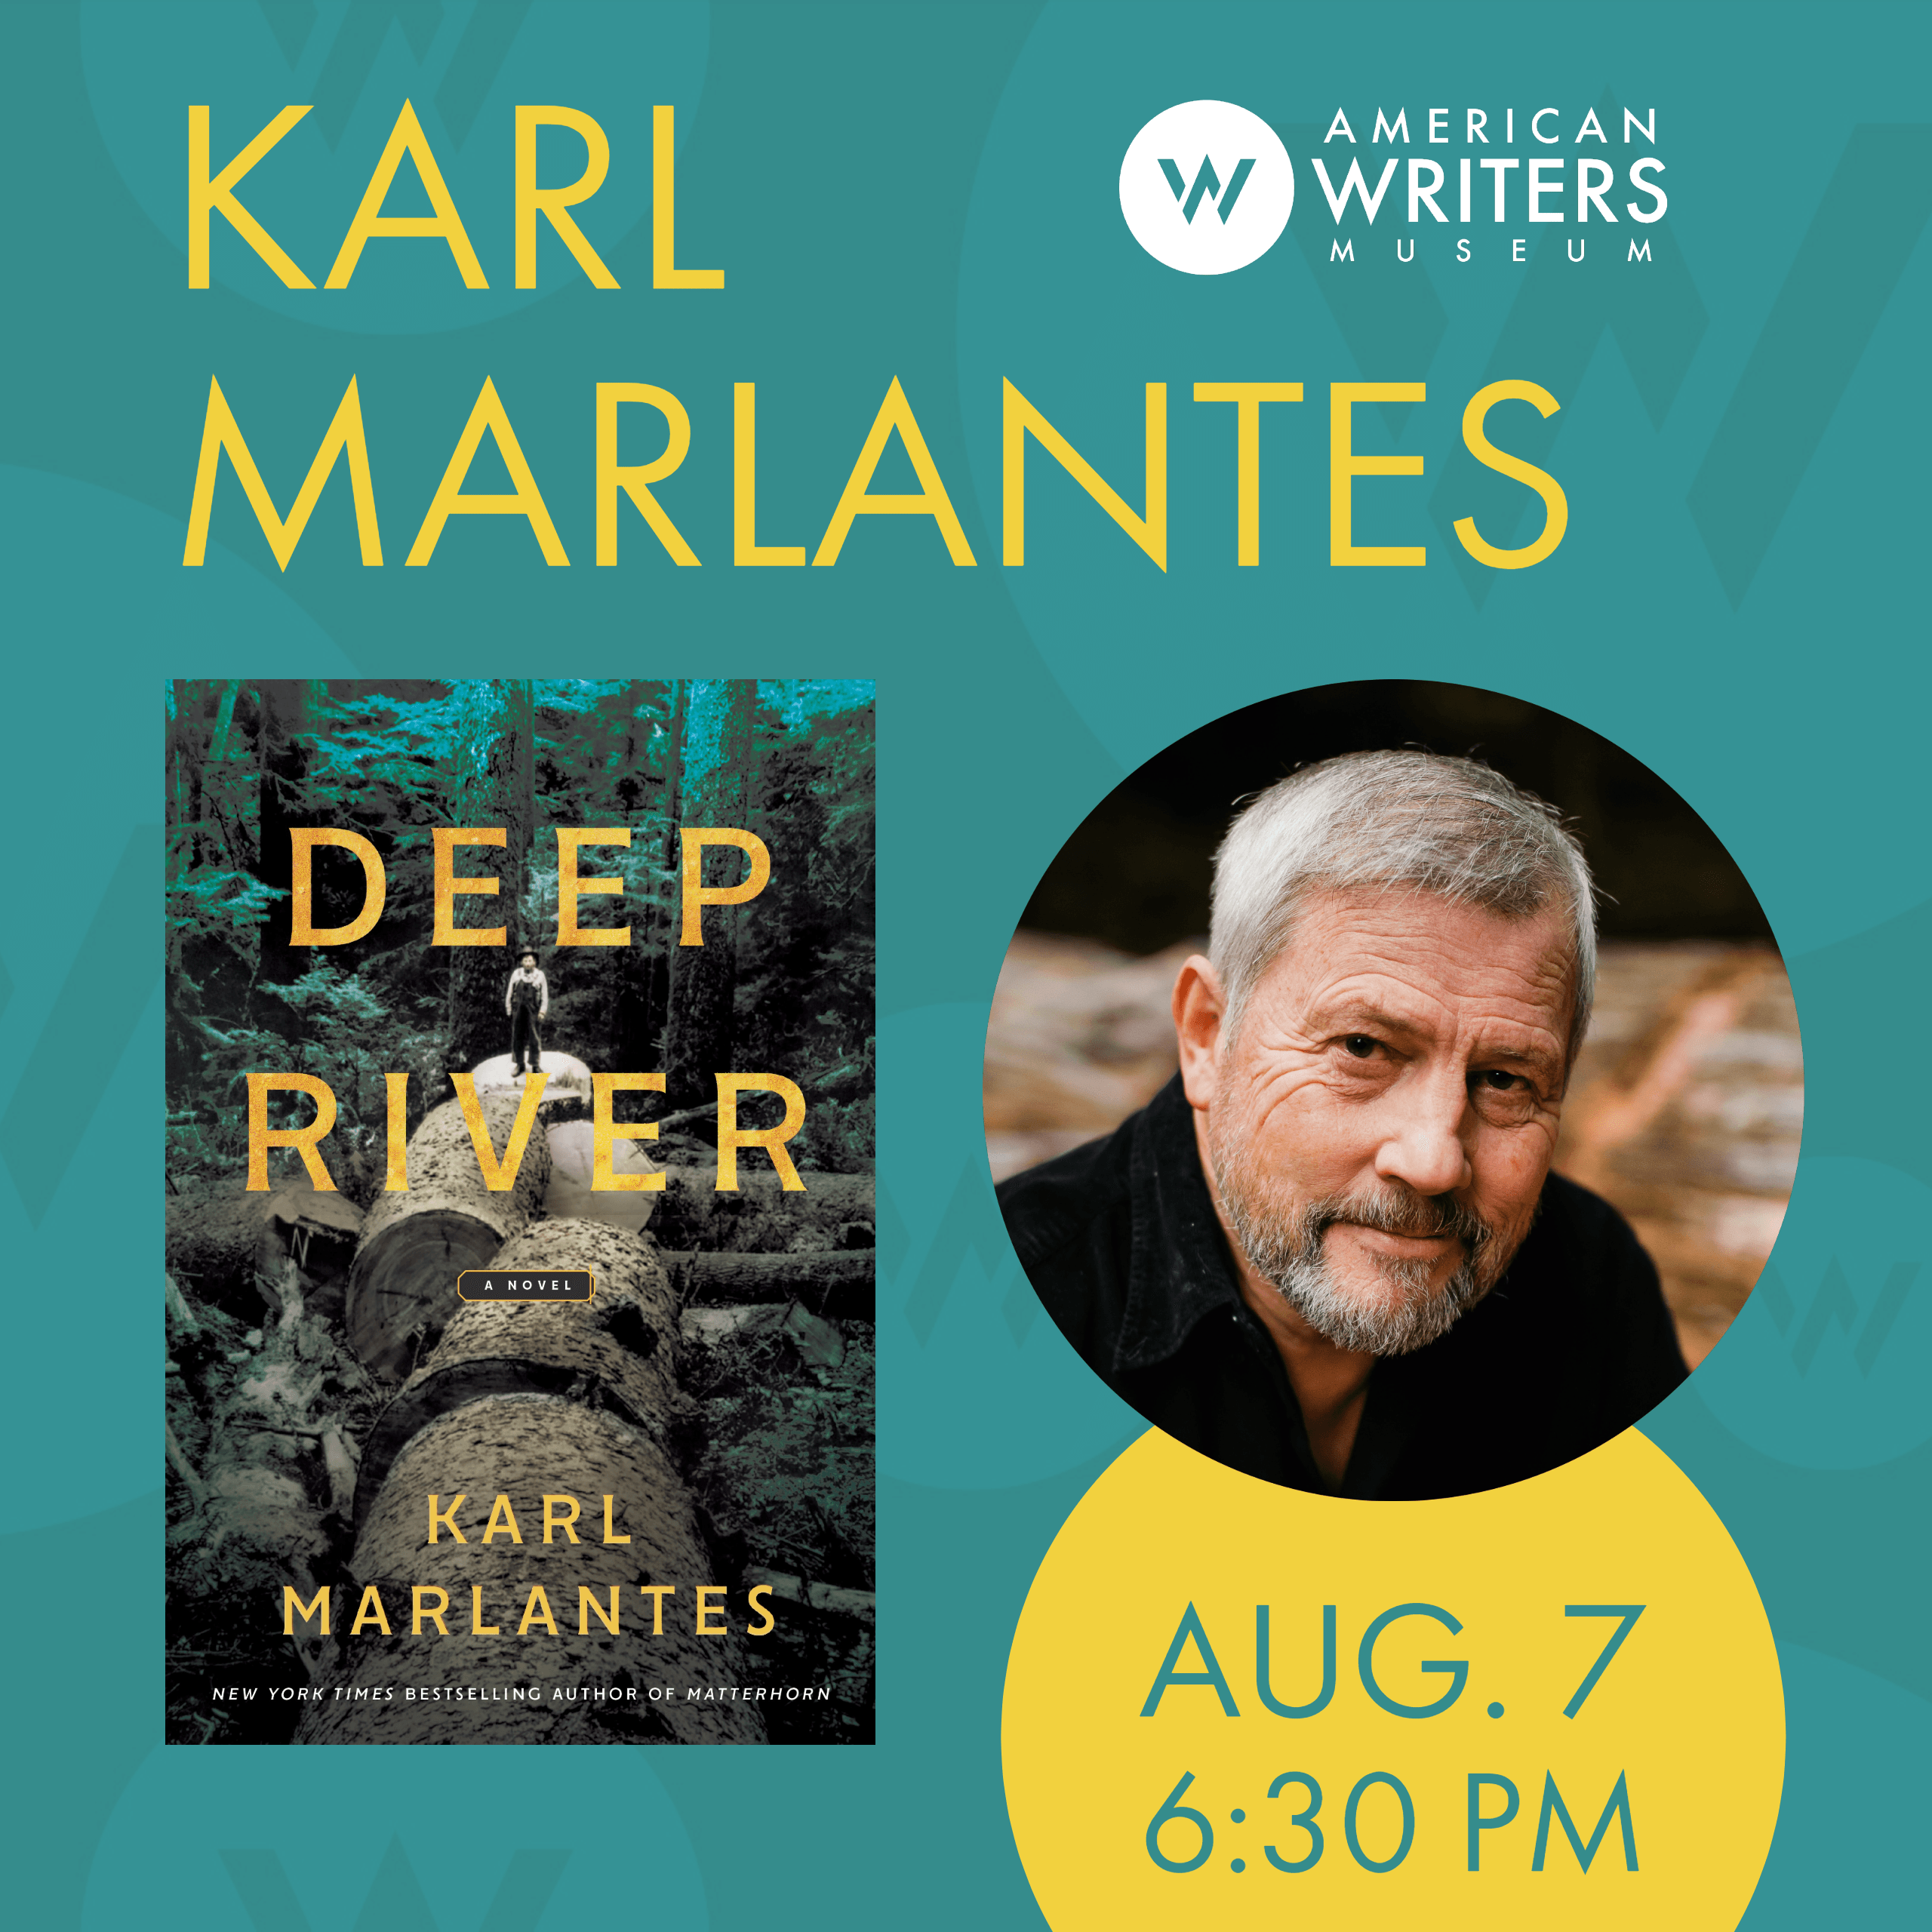 Karl Marlantes at the American Writers Museum on August 7